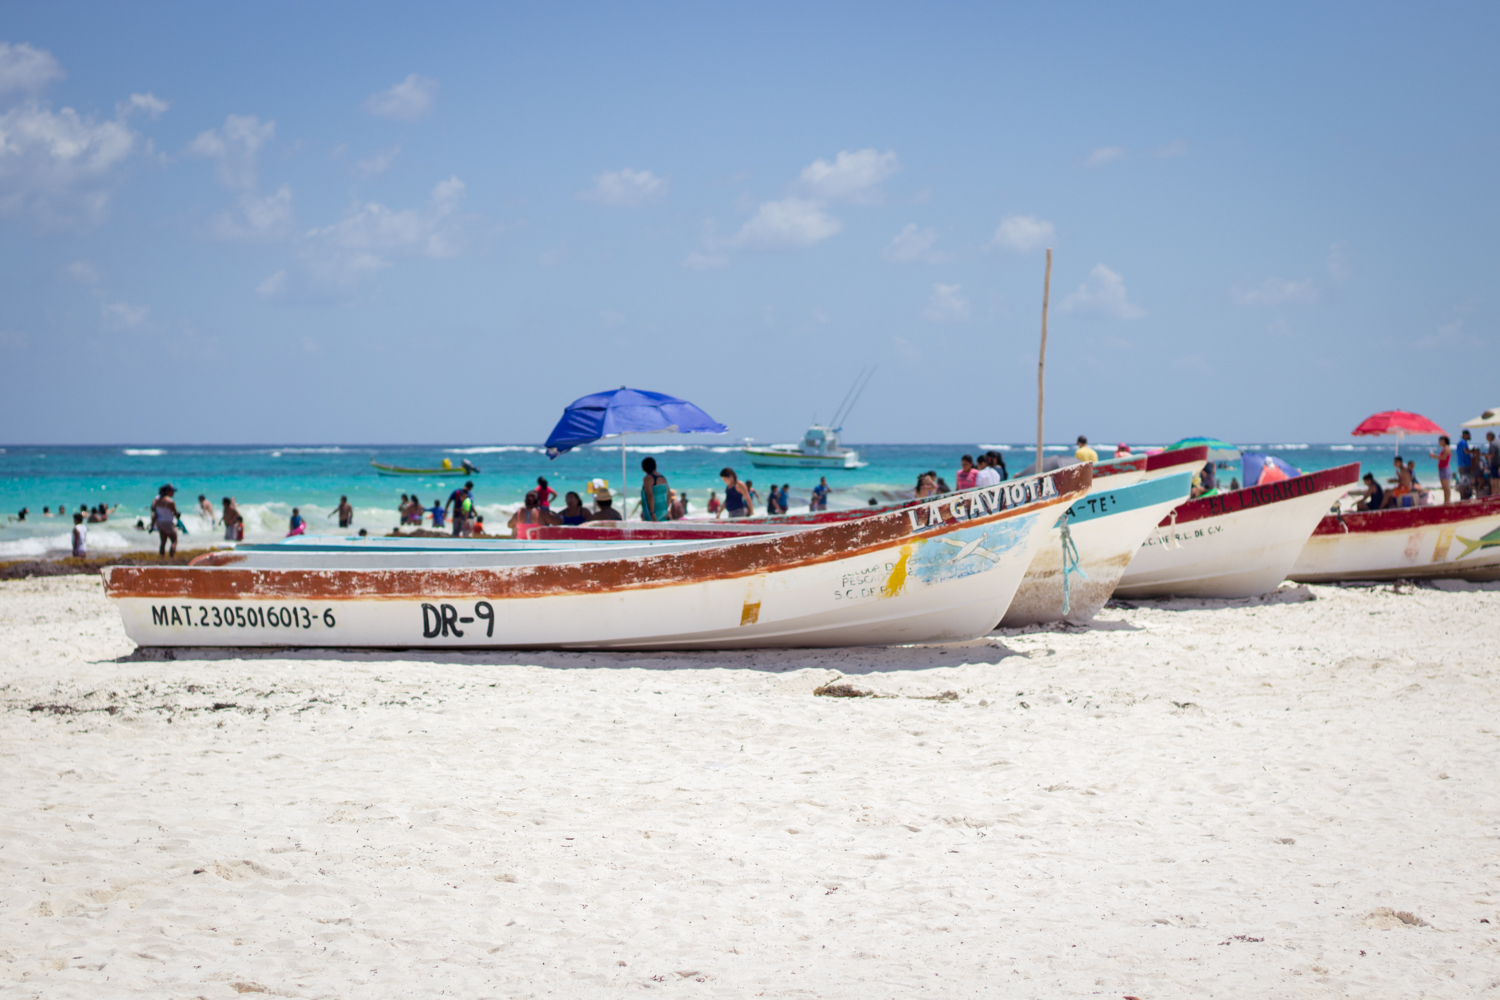 Boats on the beach in Tulum, Mexico